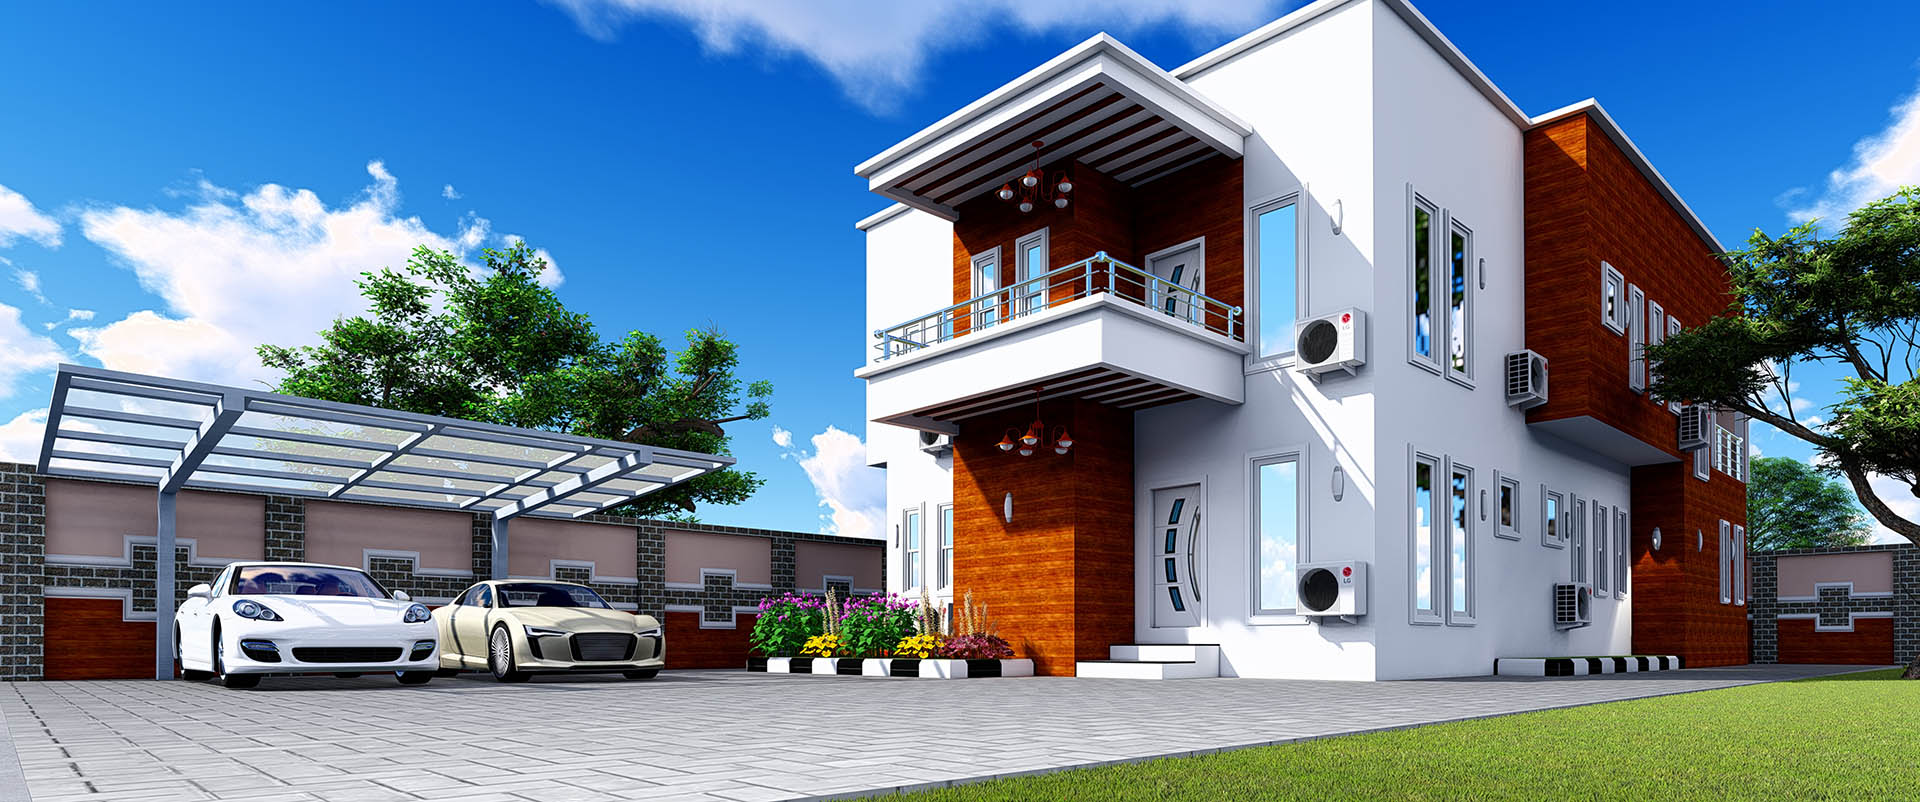 Structural design by Upline Works - Top architectural company in Nigeria